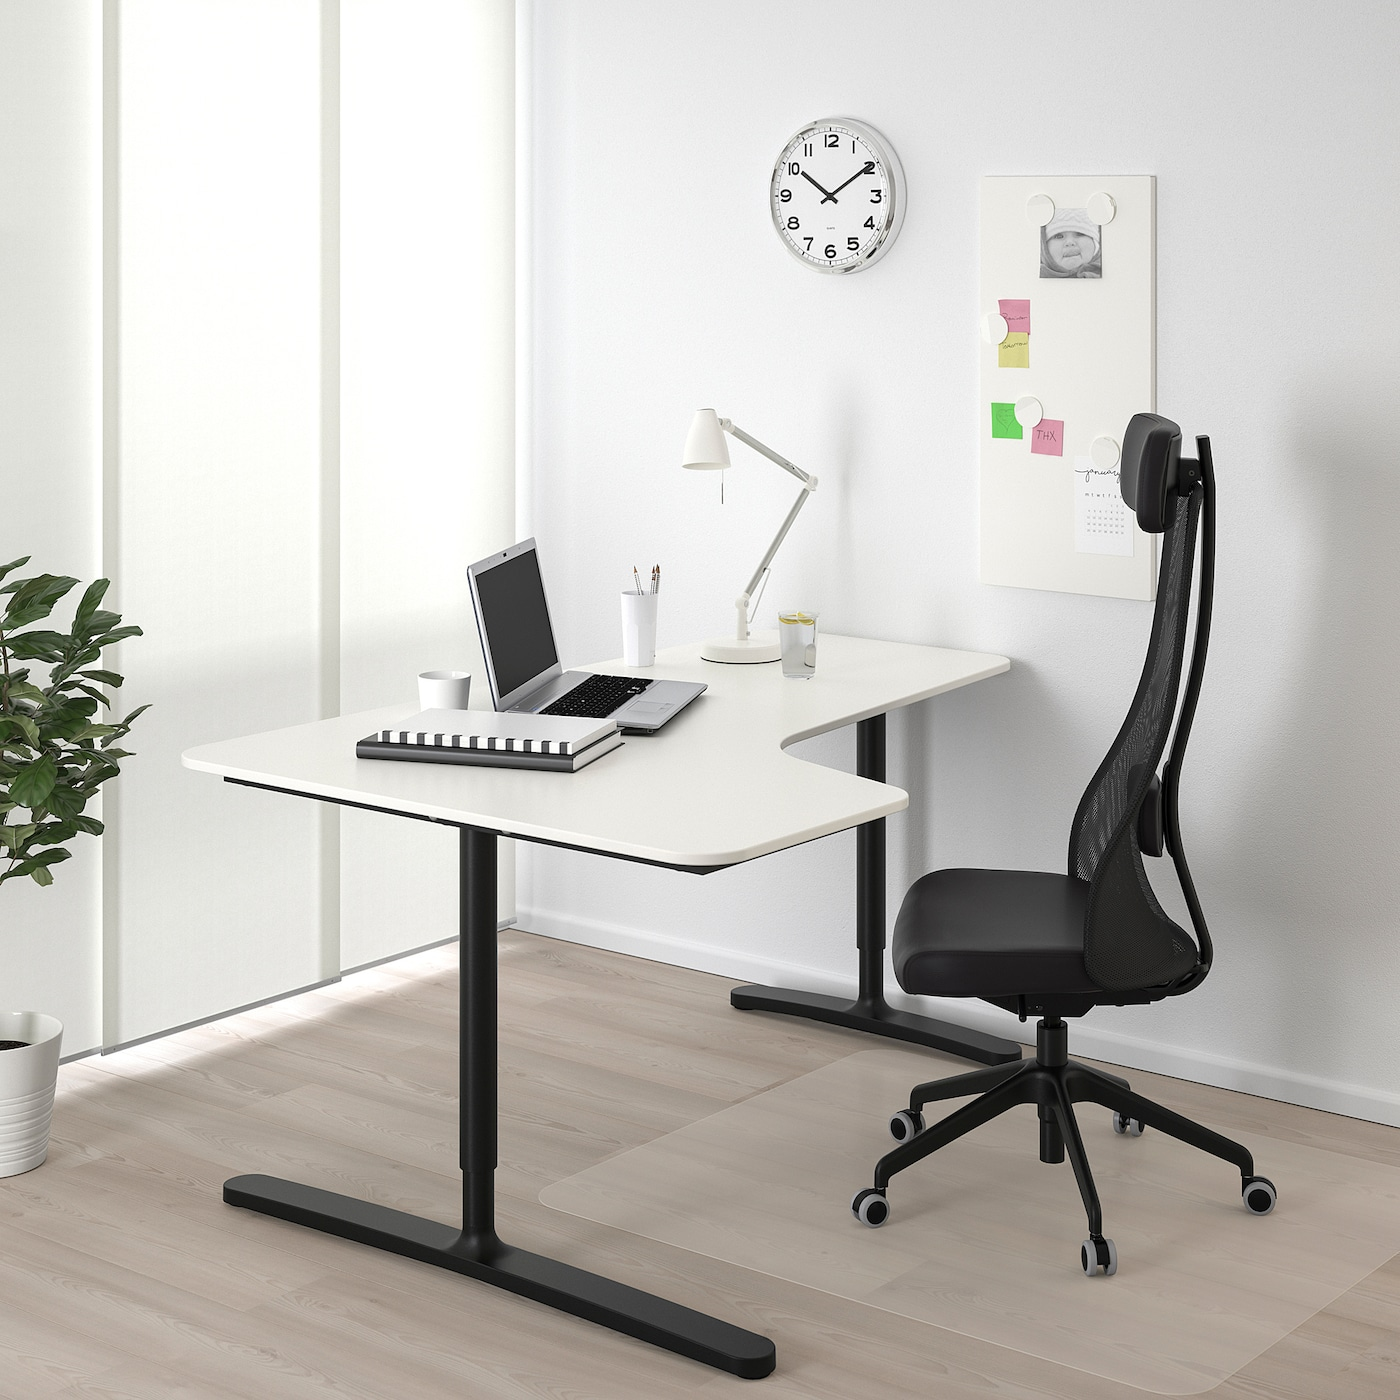 Ikea Bekant White Sit Stand Desk Office